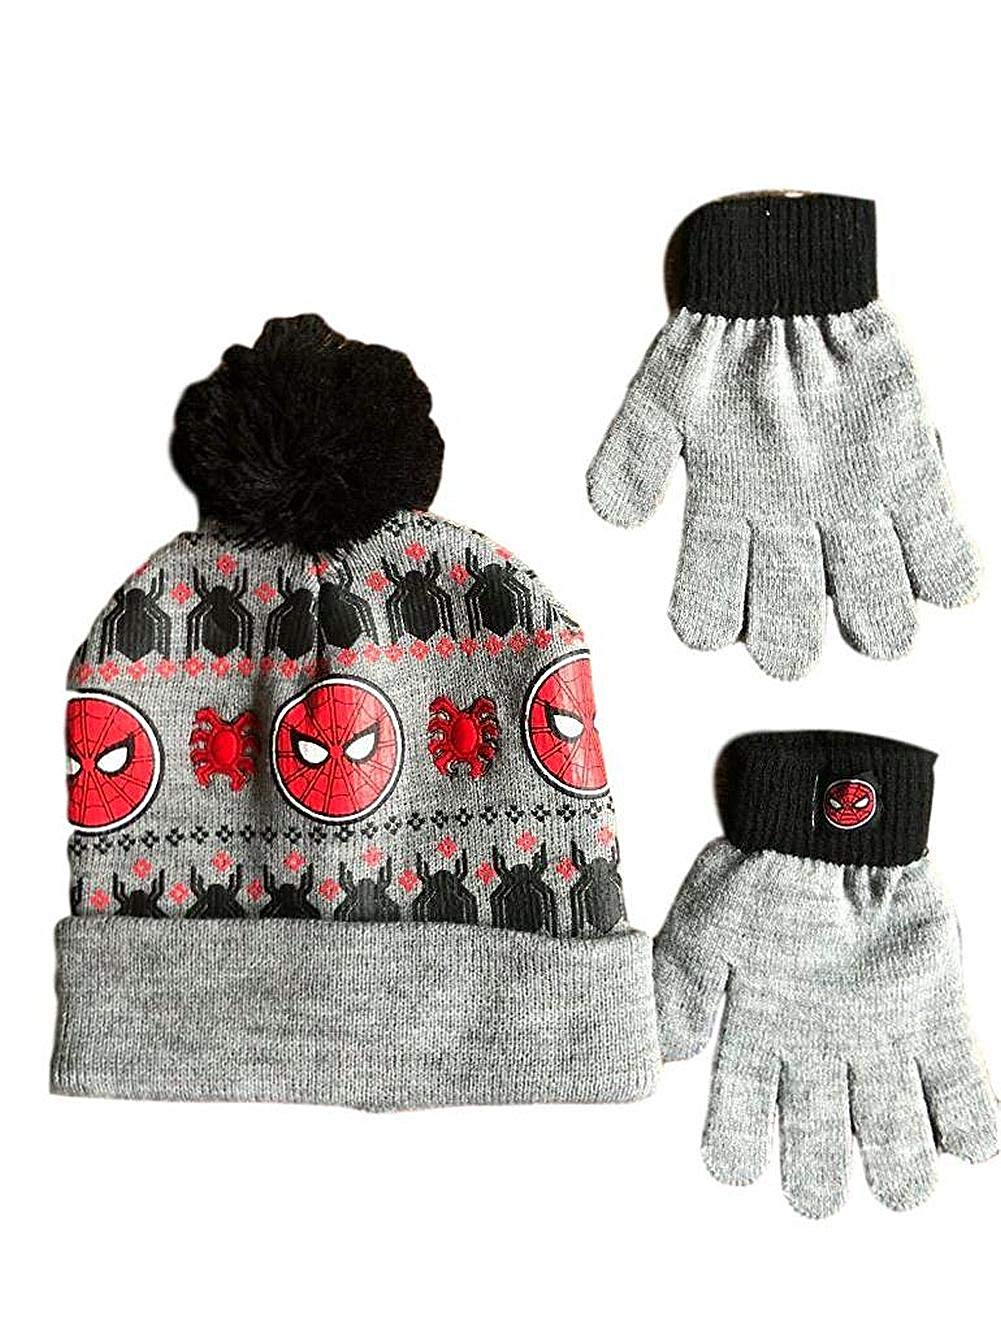 695a9f00f11 Get Quotations · BerkFashion Spiderman Hat for Boys Gloves Winter Cold  Weather Beanie Cap